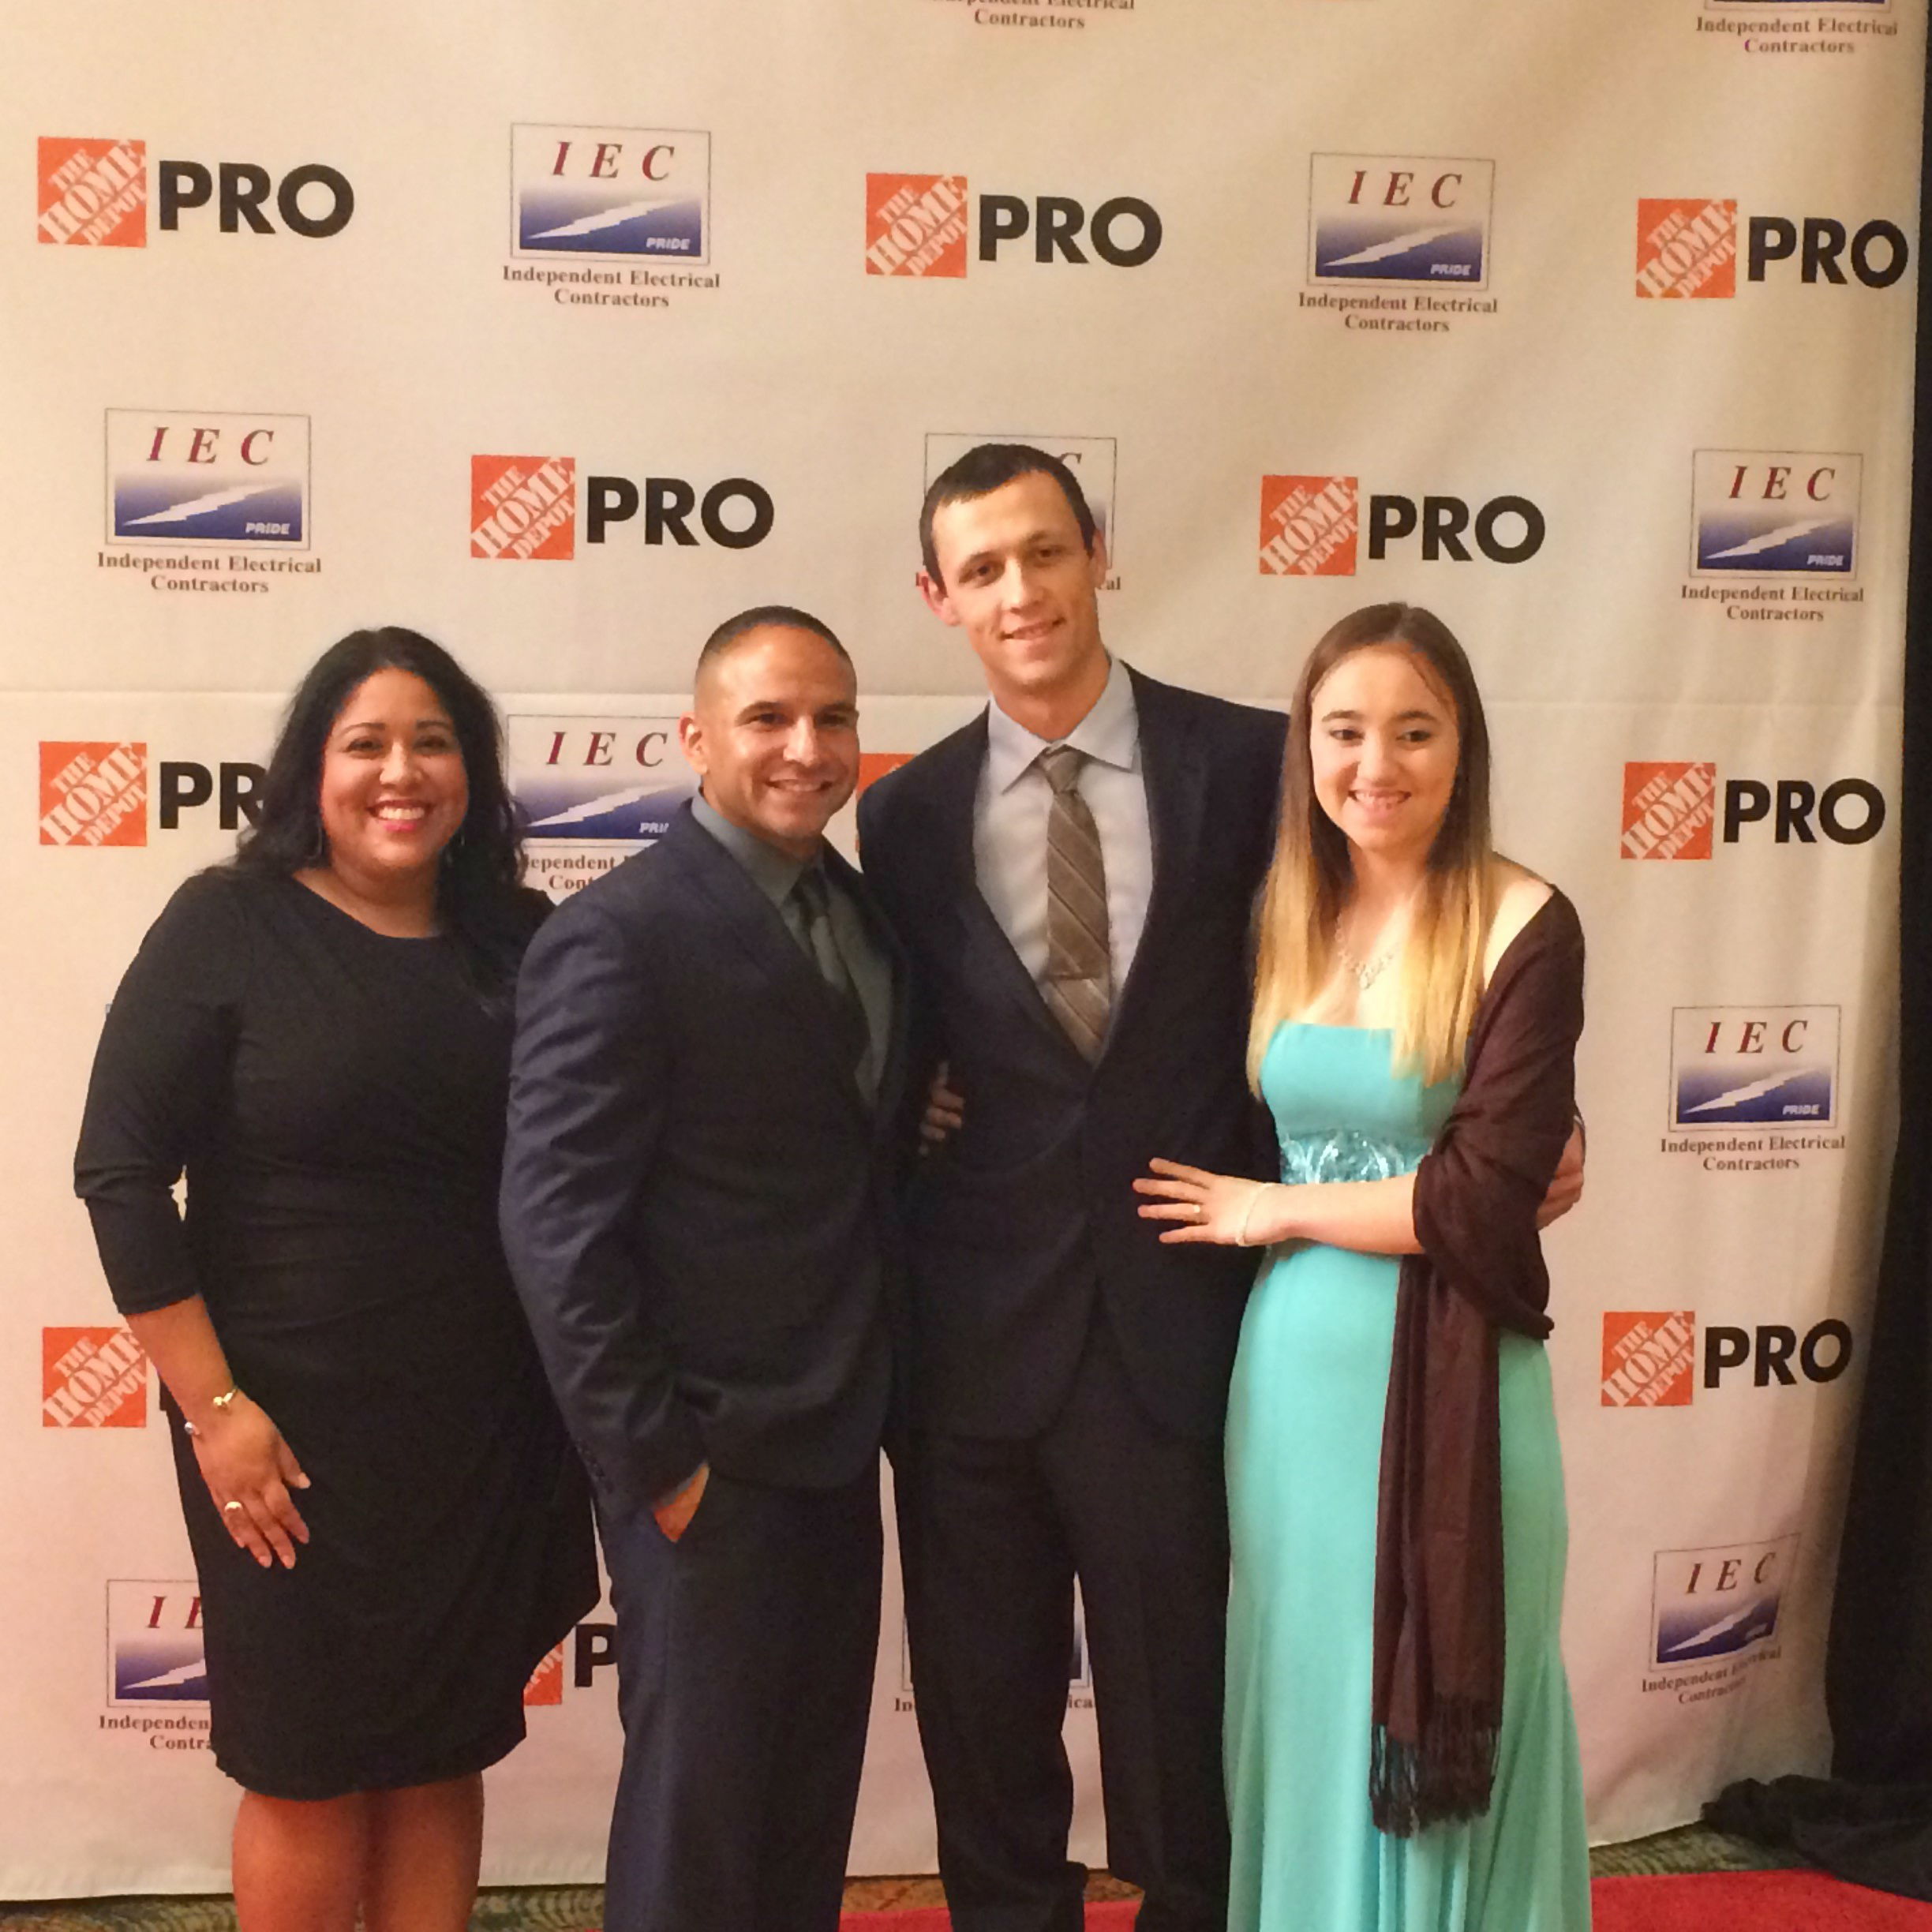 Riley with fiance, Aubrey, and Ray Gutierrez (GBI Production Mgr) and his wife Brandi